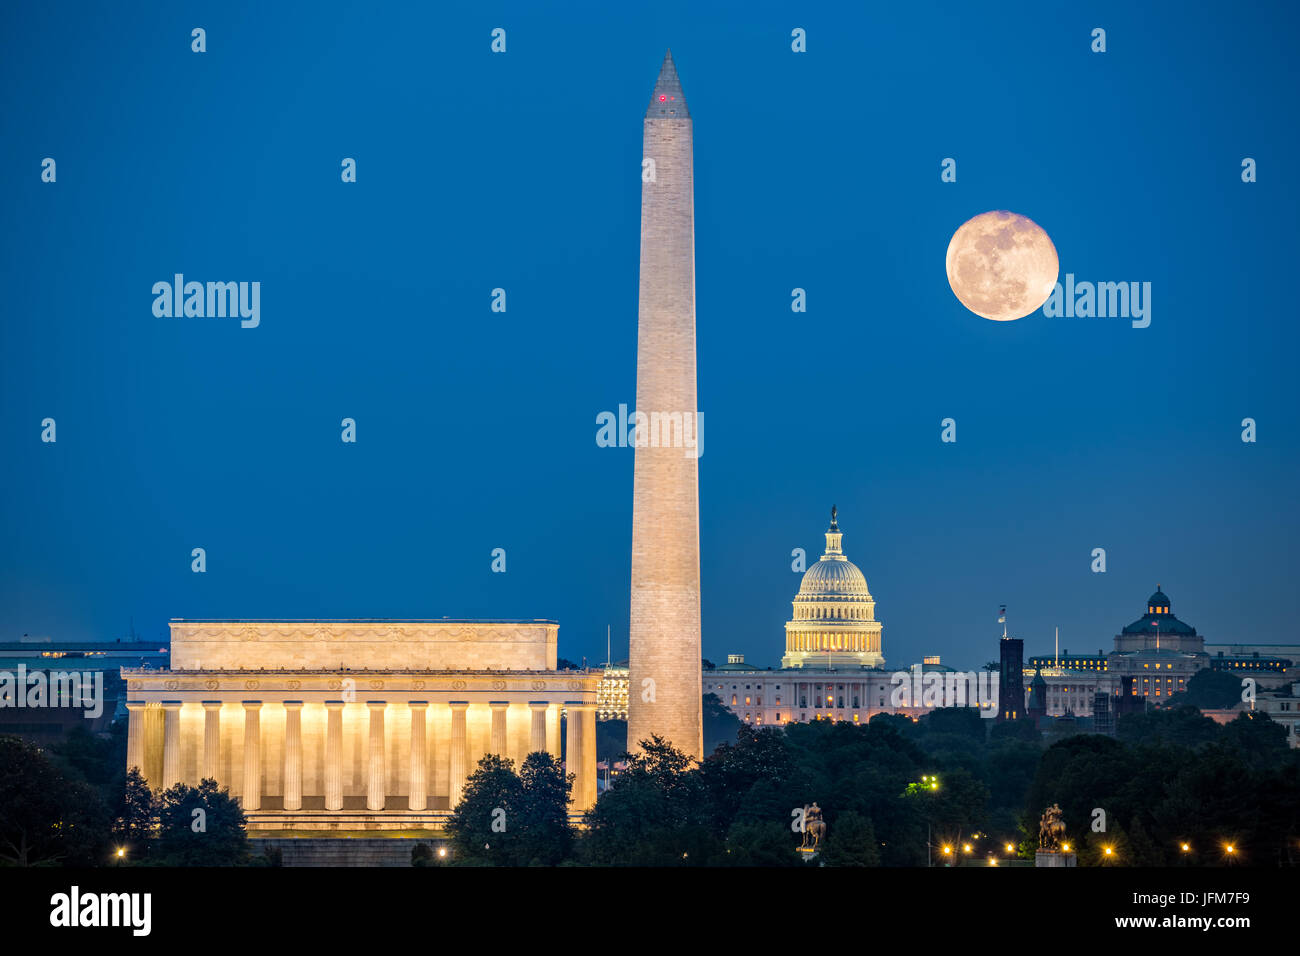 Supermoon al di sopra di tre monumenti: il Lincoln Memorial, il Monumento a Washington e il Campidoglio di Washington Immagini Stock